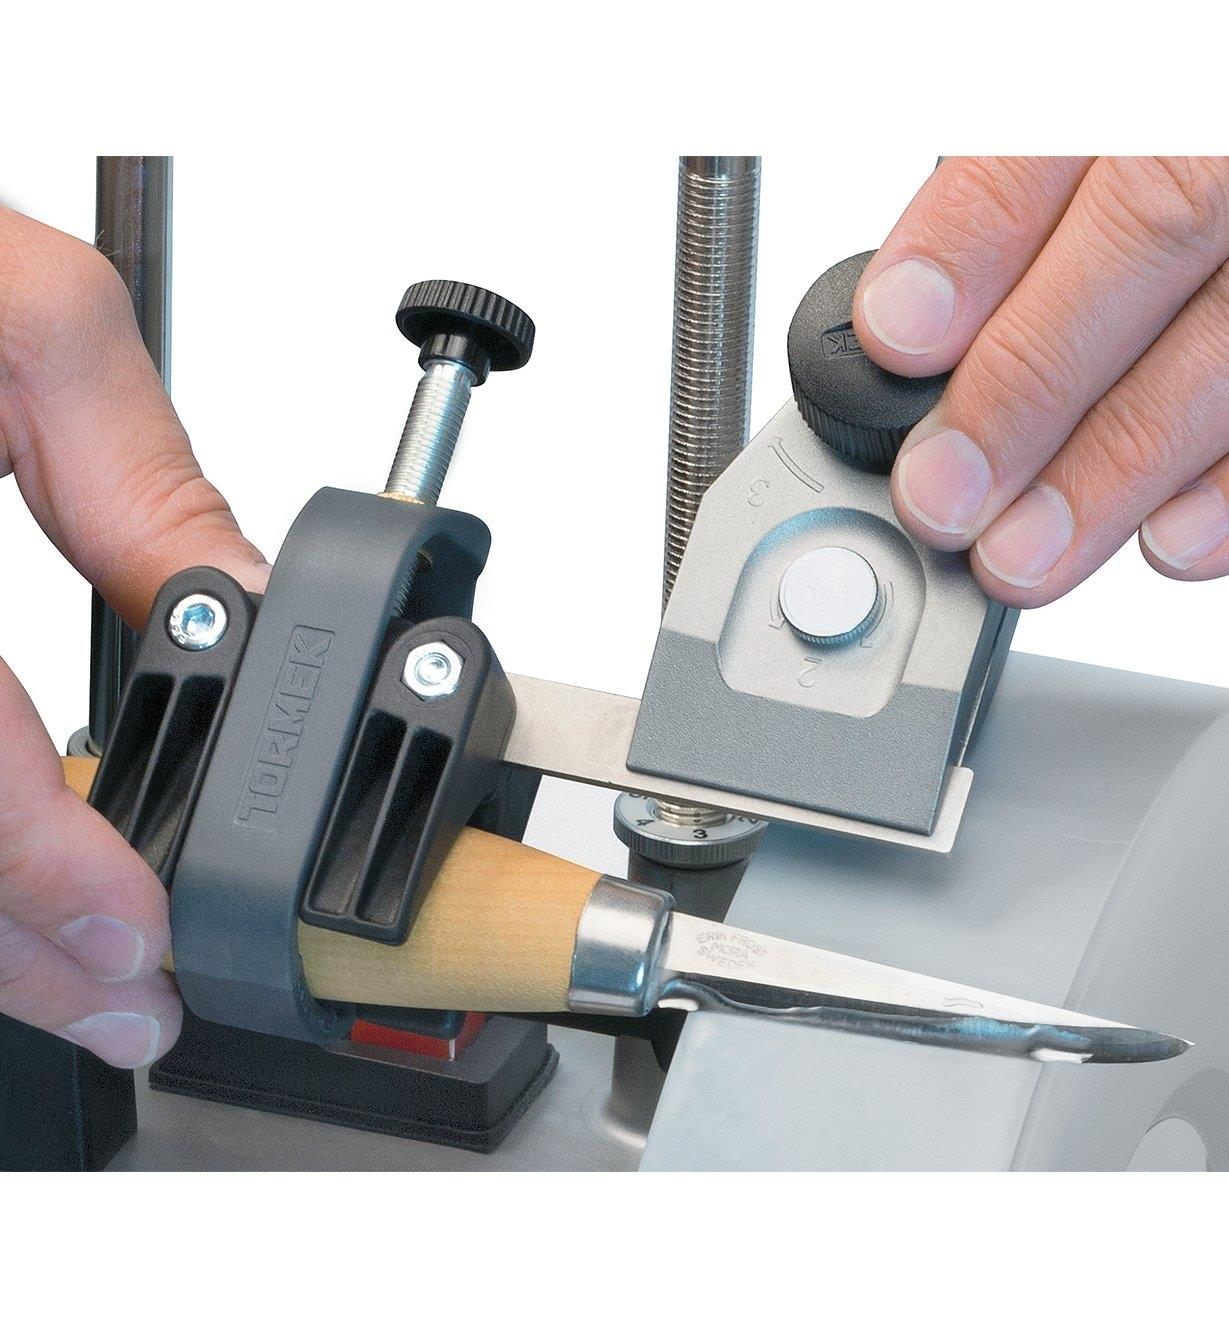 Sharpening a knife using the Tormek Regular Knife Jig